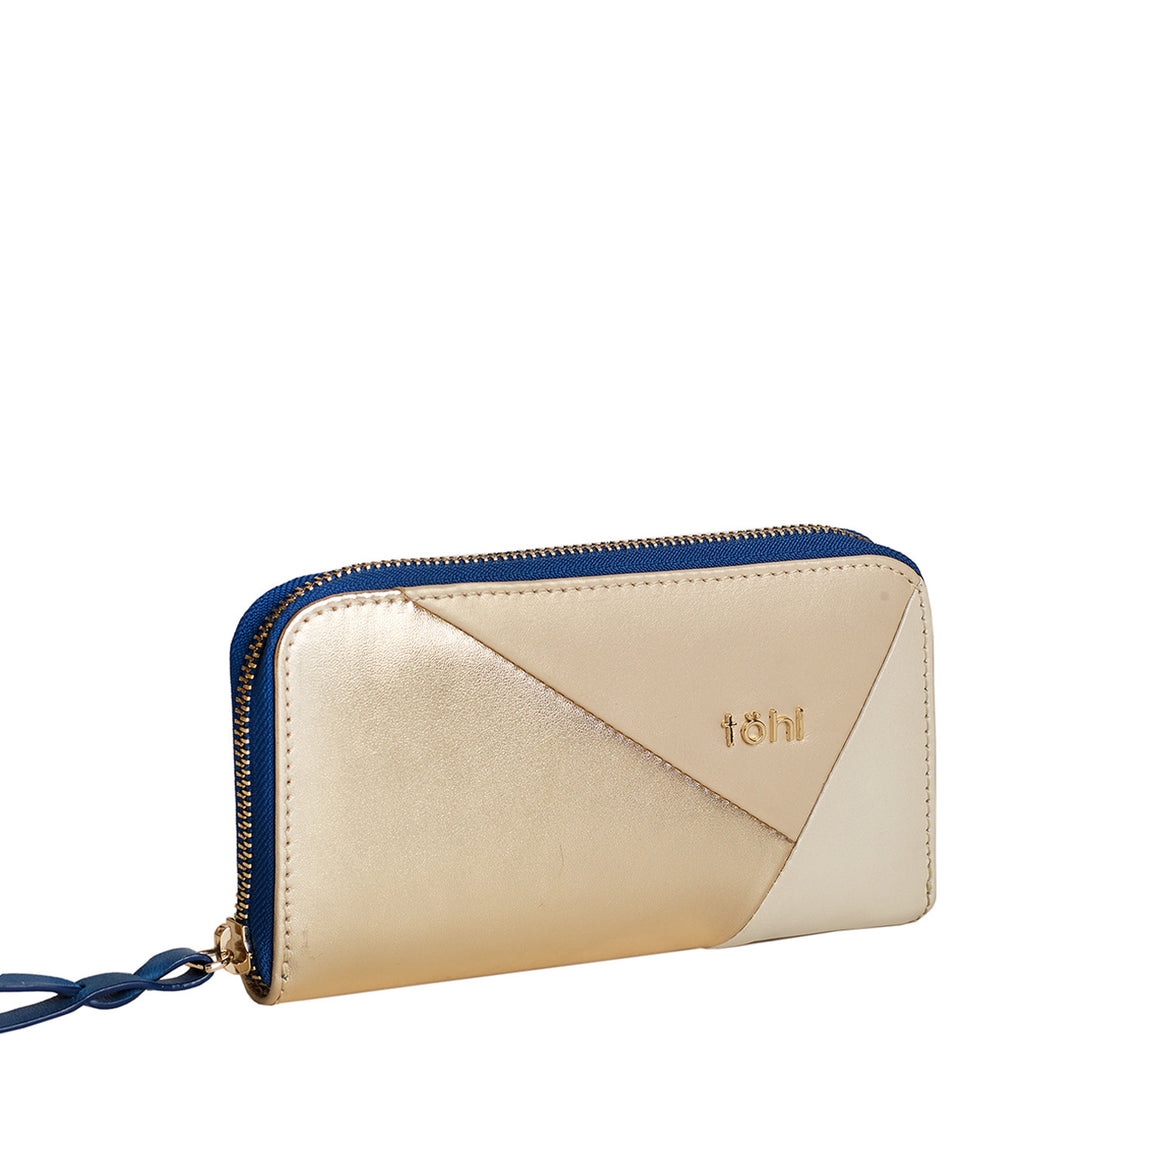 WT 0006 - TOHL TURA WOMEN'S ZIPAROUND WALLET - GOLD